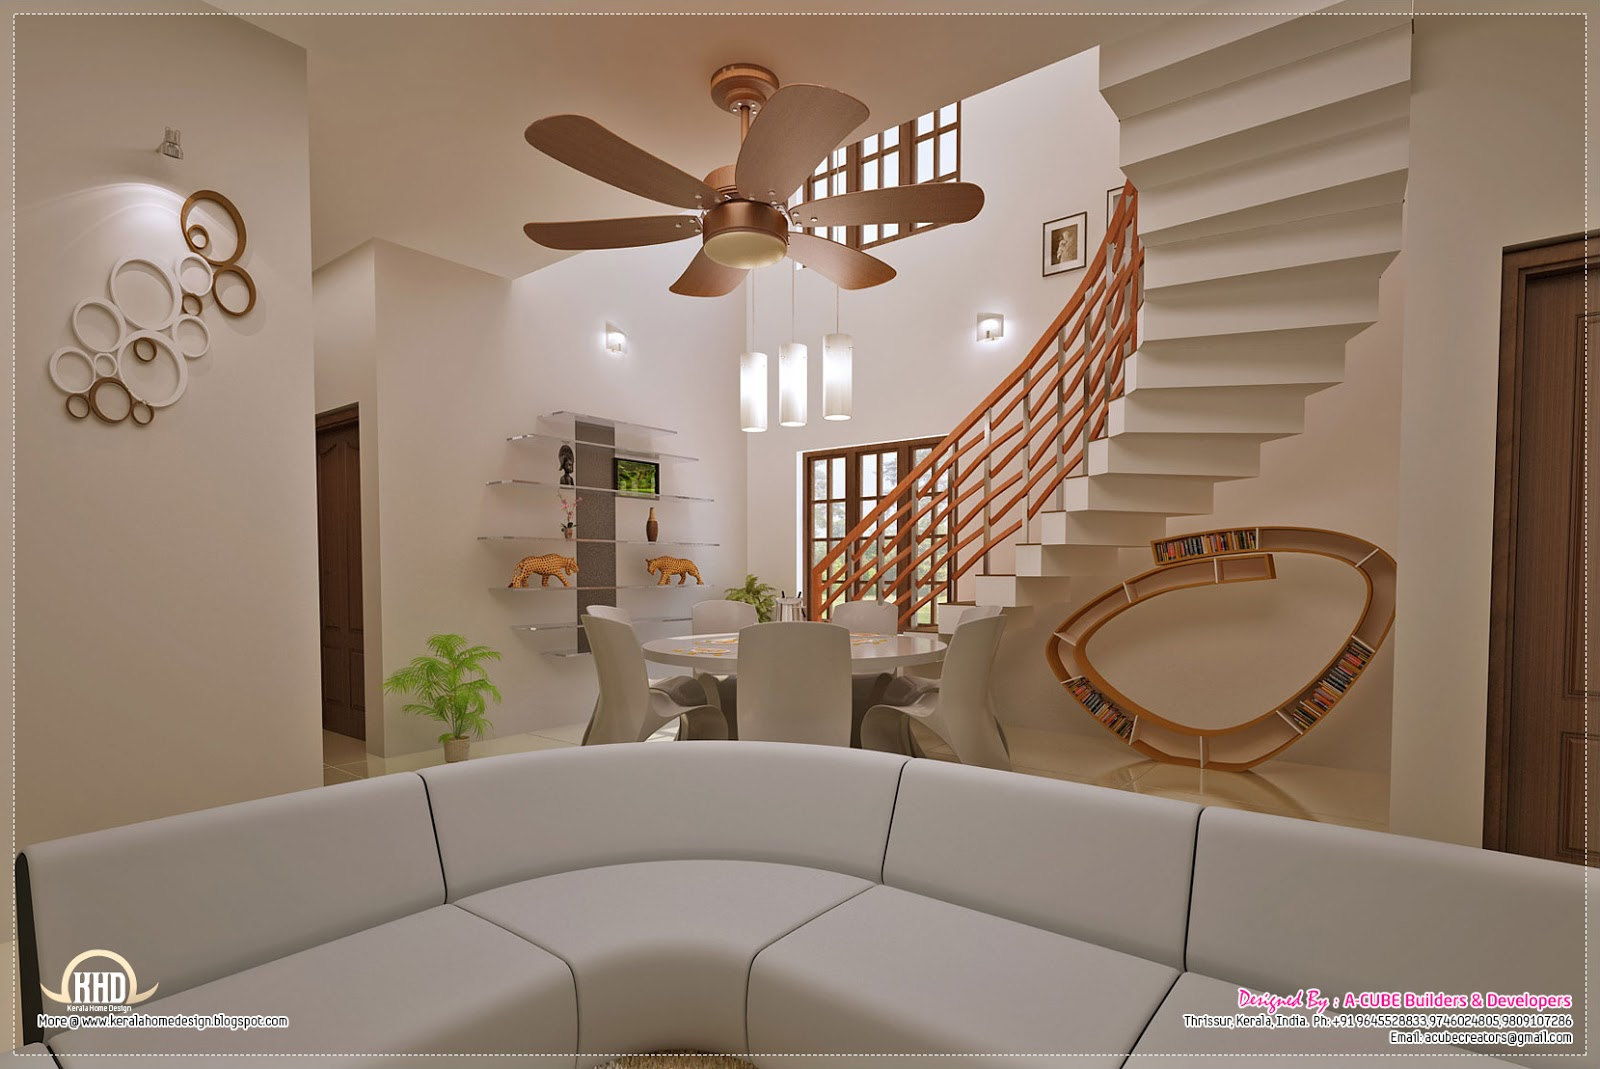 Awesome interior decoration ideas house design plans Beautiful home interior designs